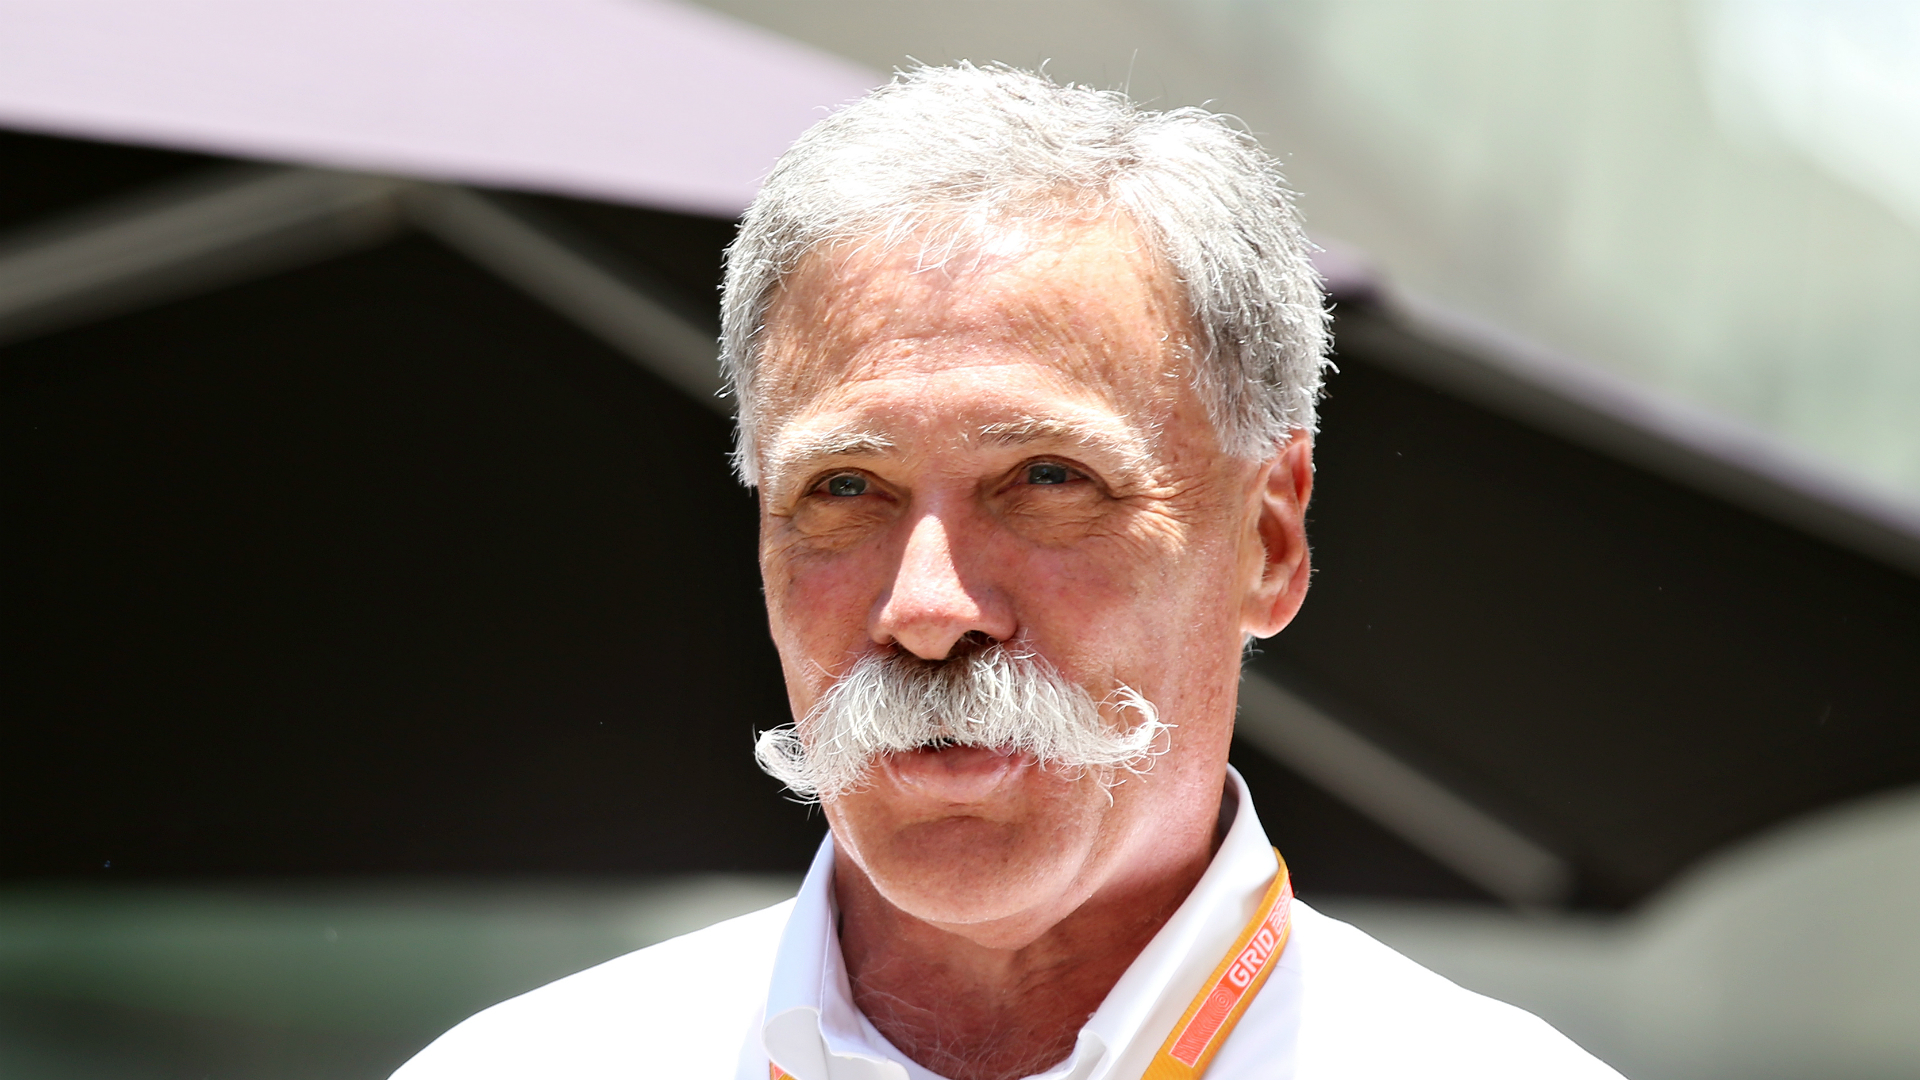 Coronavirus: F1 races will not be cancelled due to a positive test